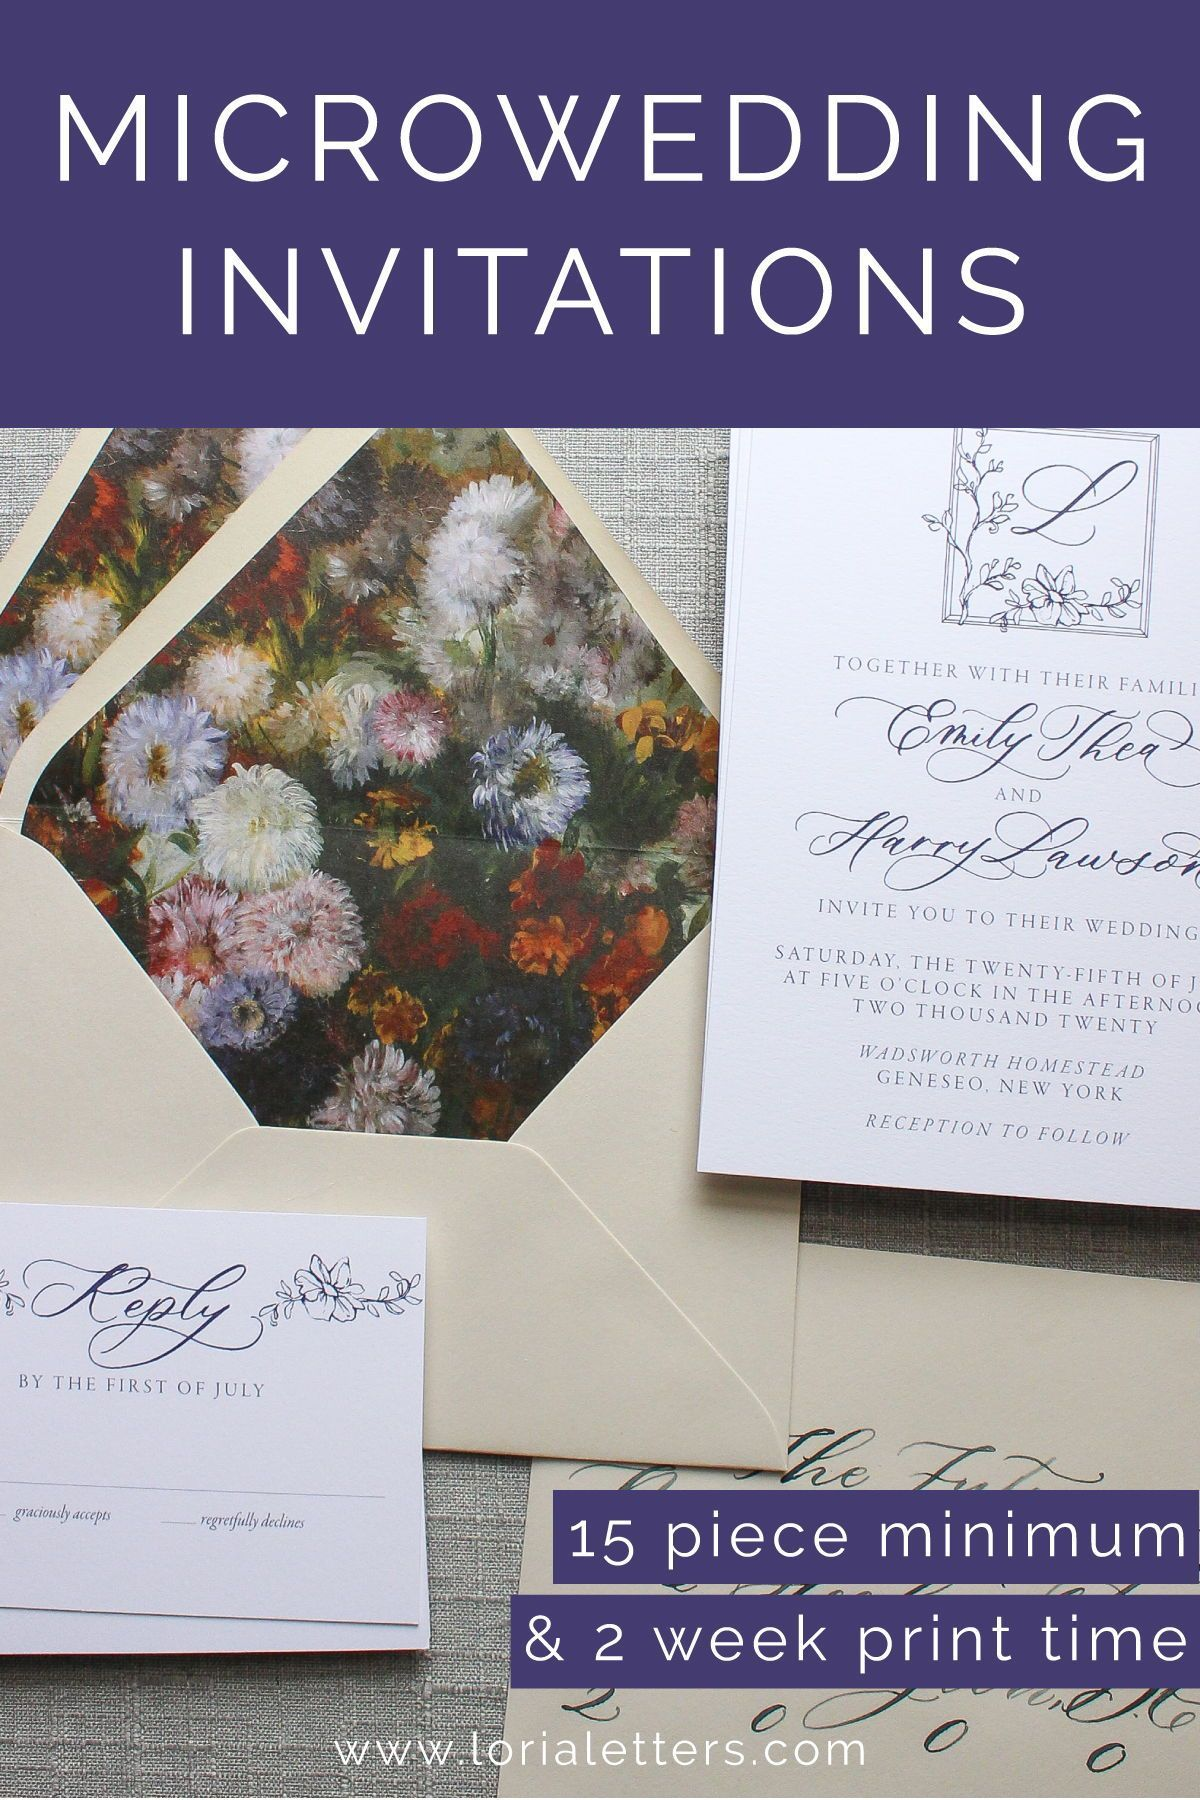 vintage calligraphy invitation for microwedding in 2020